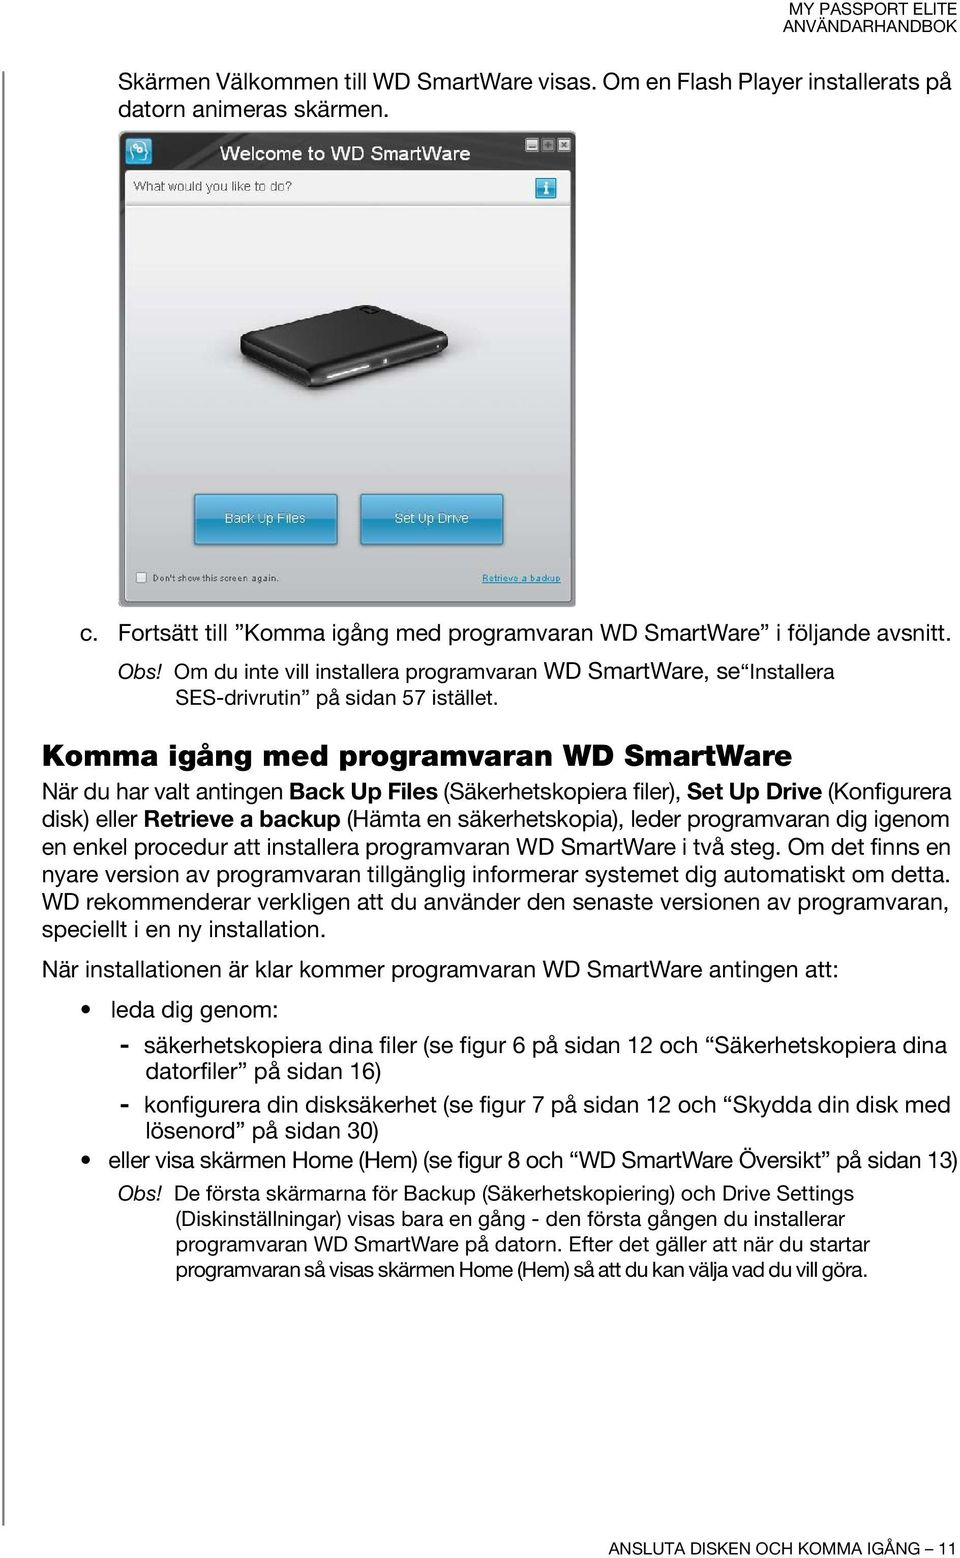 Komma igång med programvaran WD SmartWare När du har valt antingen Back Up Files (Säkerhetskopiera filer), Set Up Drive (Konfigurera disk) eller Retrieve a backup (Hämta en säkerhetskopia), leder